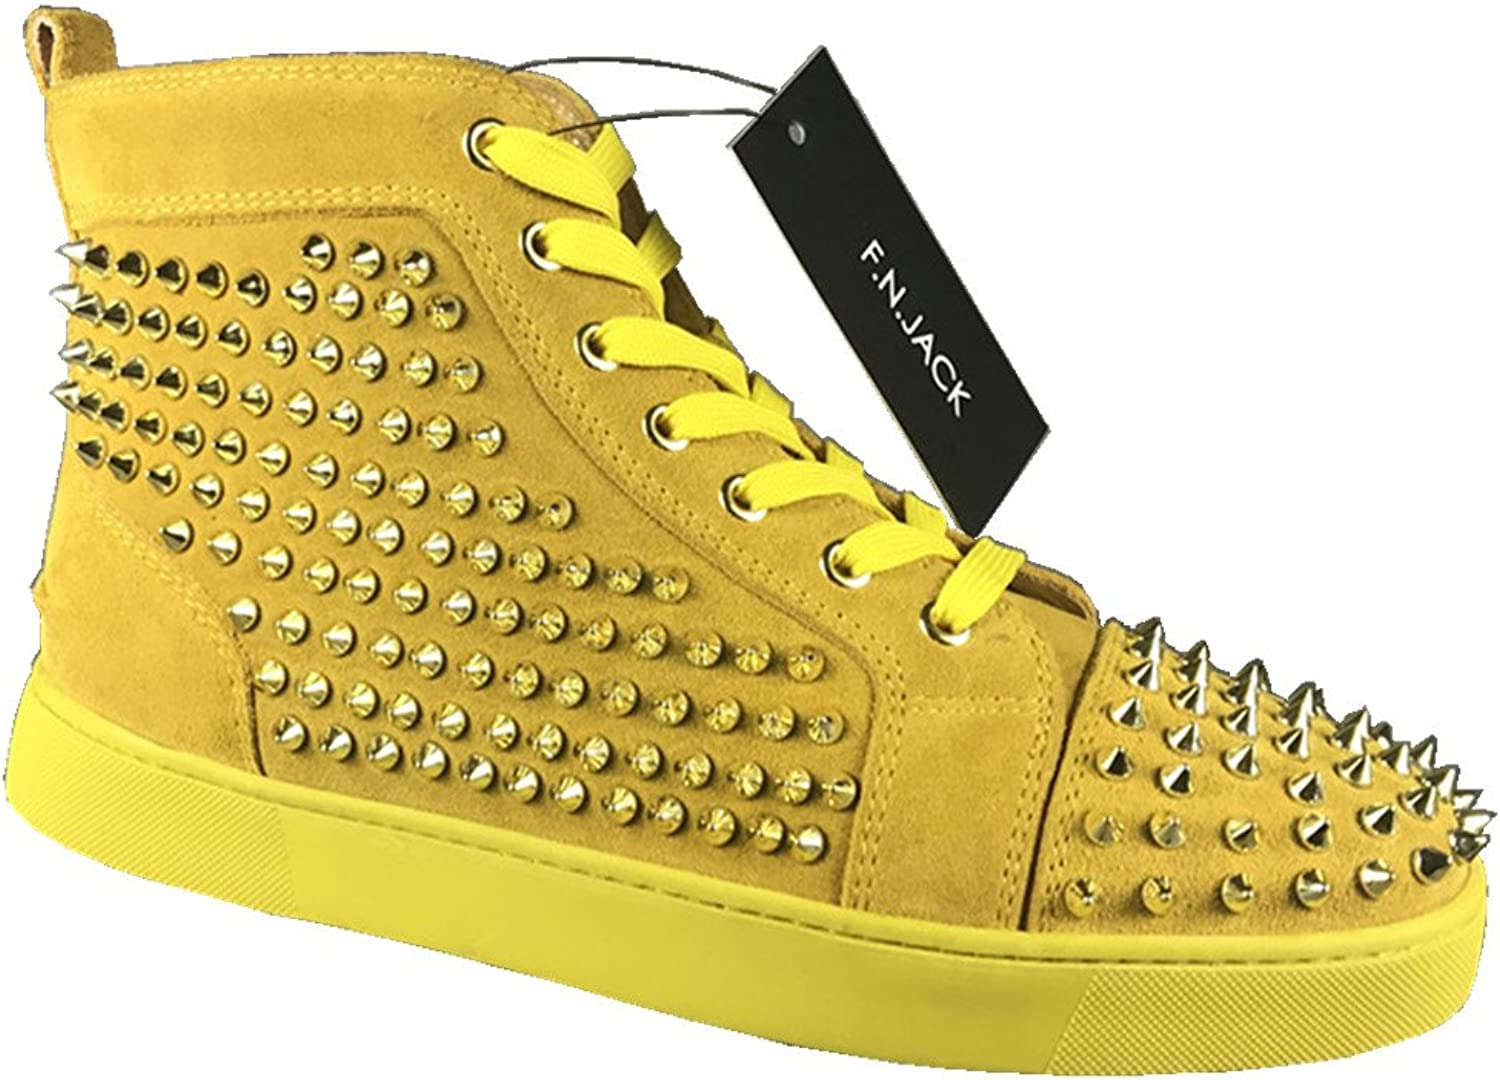 F.N.JACK Men's Sneakers Flat High Top Suede Toe Spikes Studs YX88543 Yellow